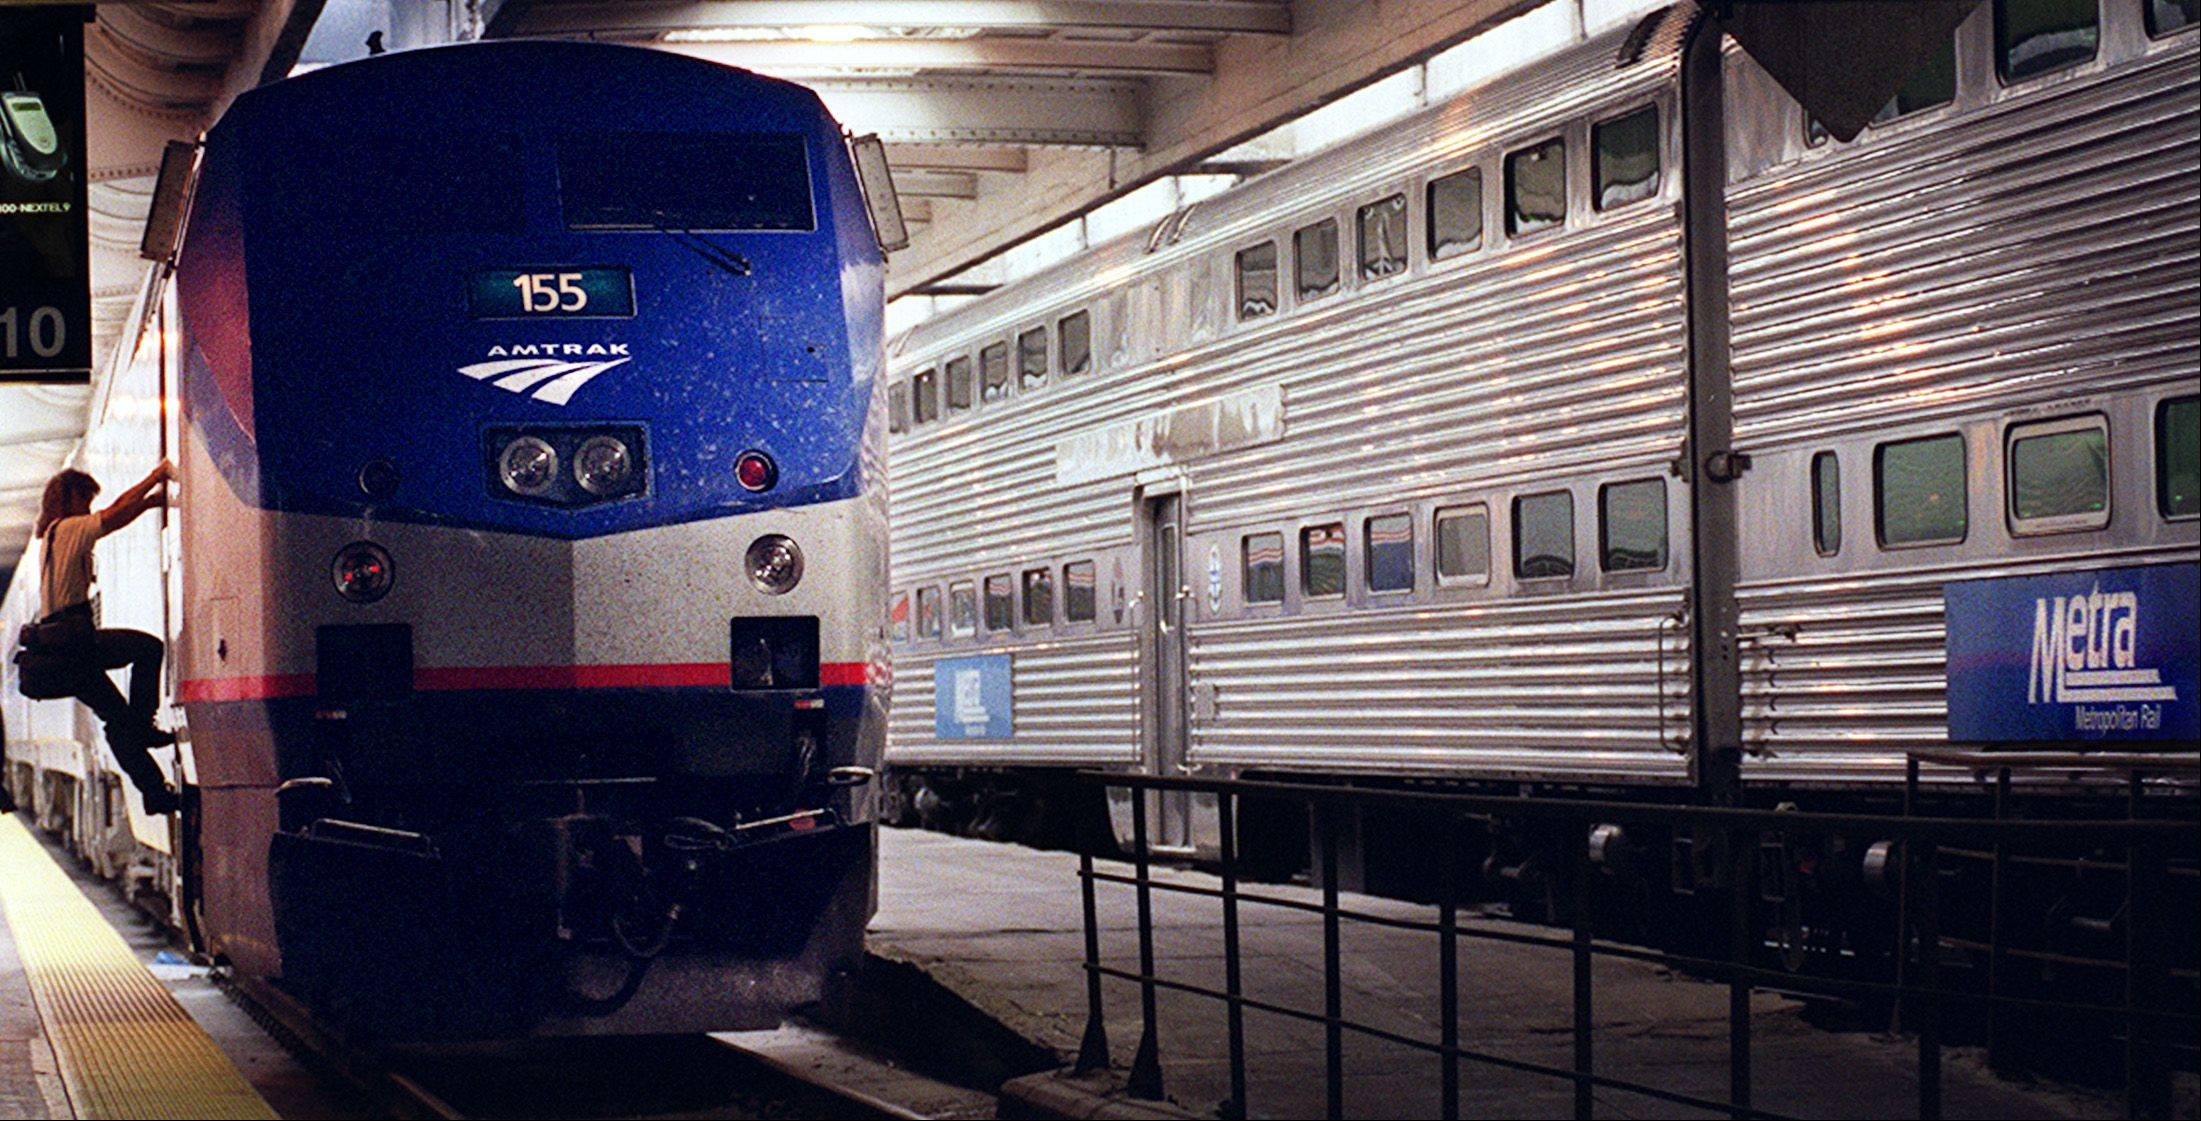 The state is picking up the tab for one additional daily Amtrak roundtrip on the Chicago-to-St. Louis corridor, where the state is investing heavily to speed up trains to 110 mph.